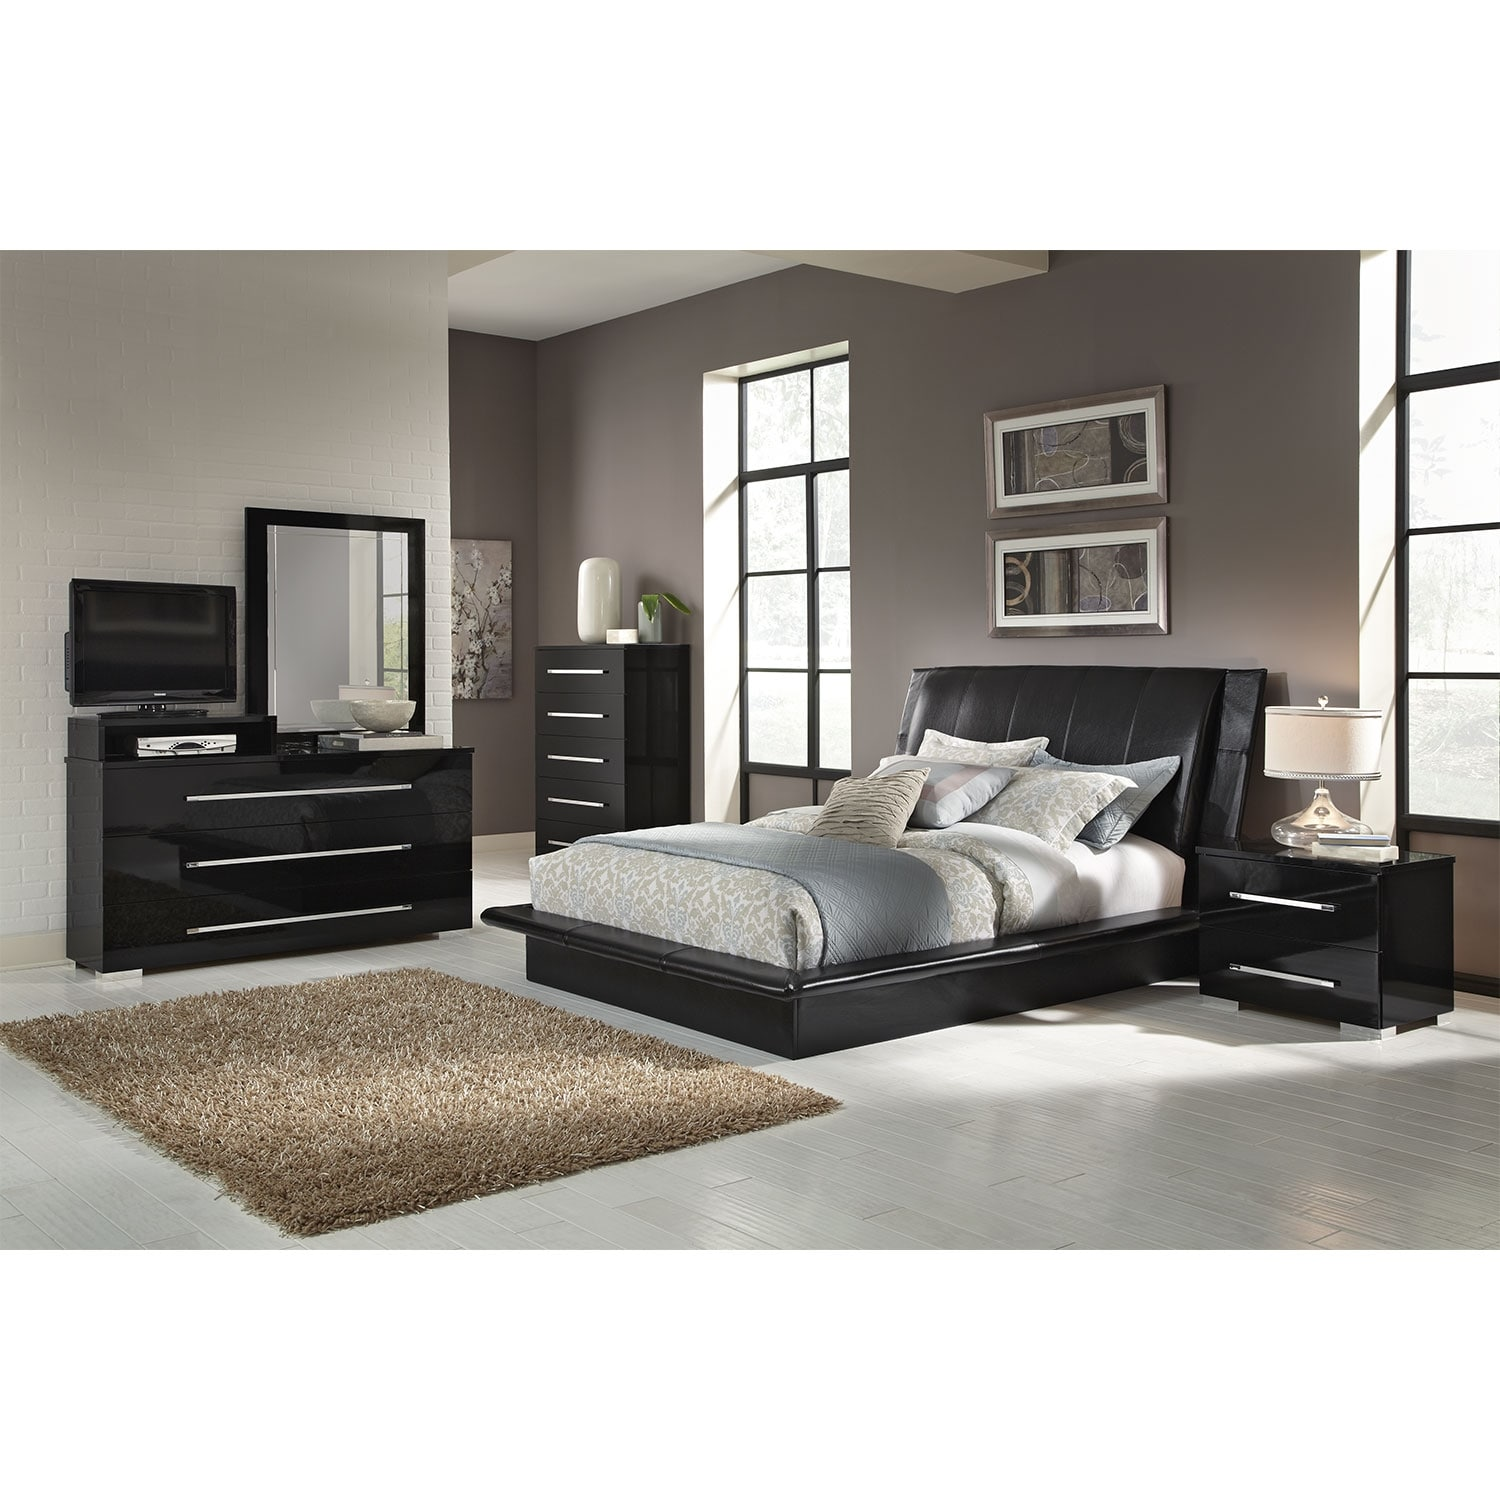 Dimora Black 7 Pc. Queen Bedroom